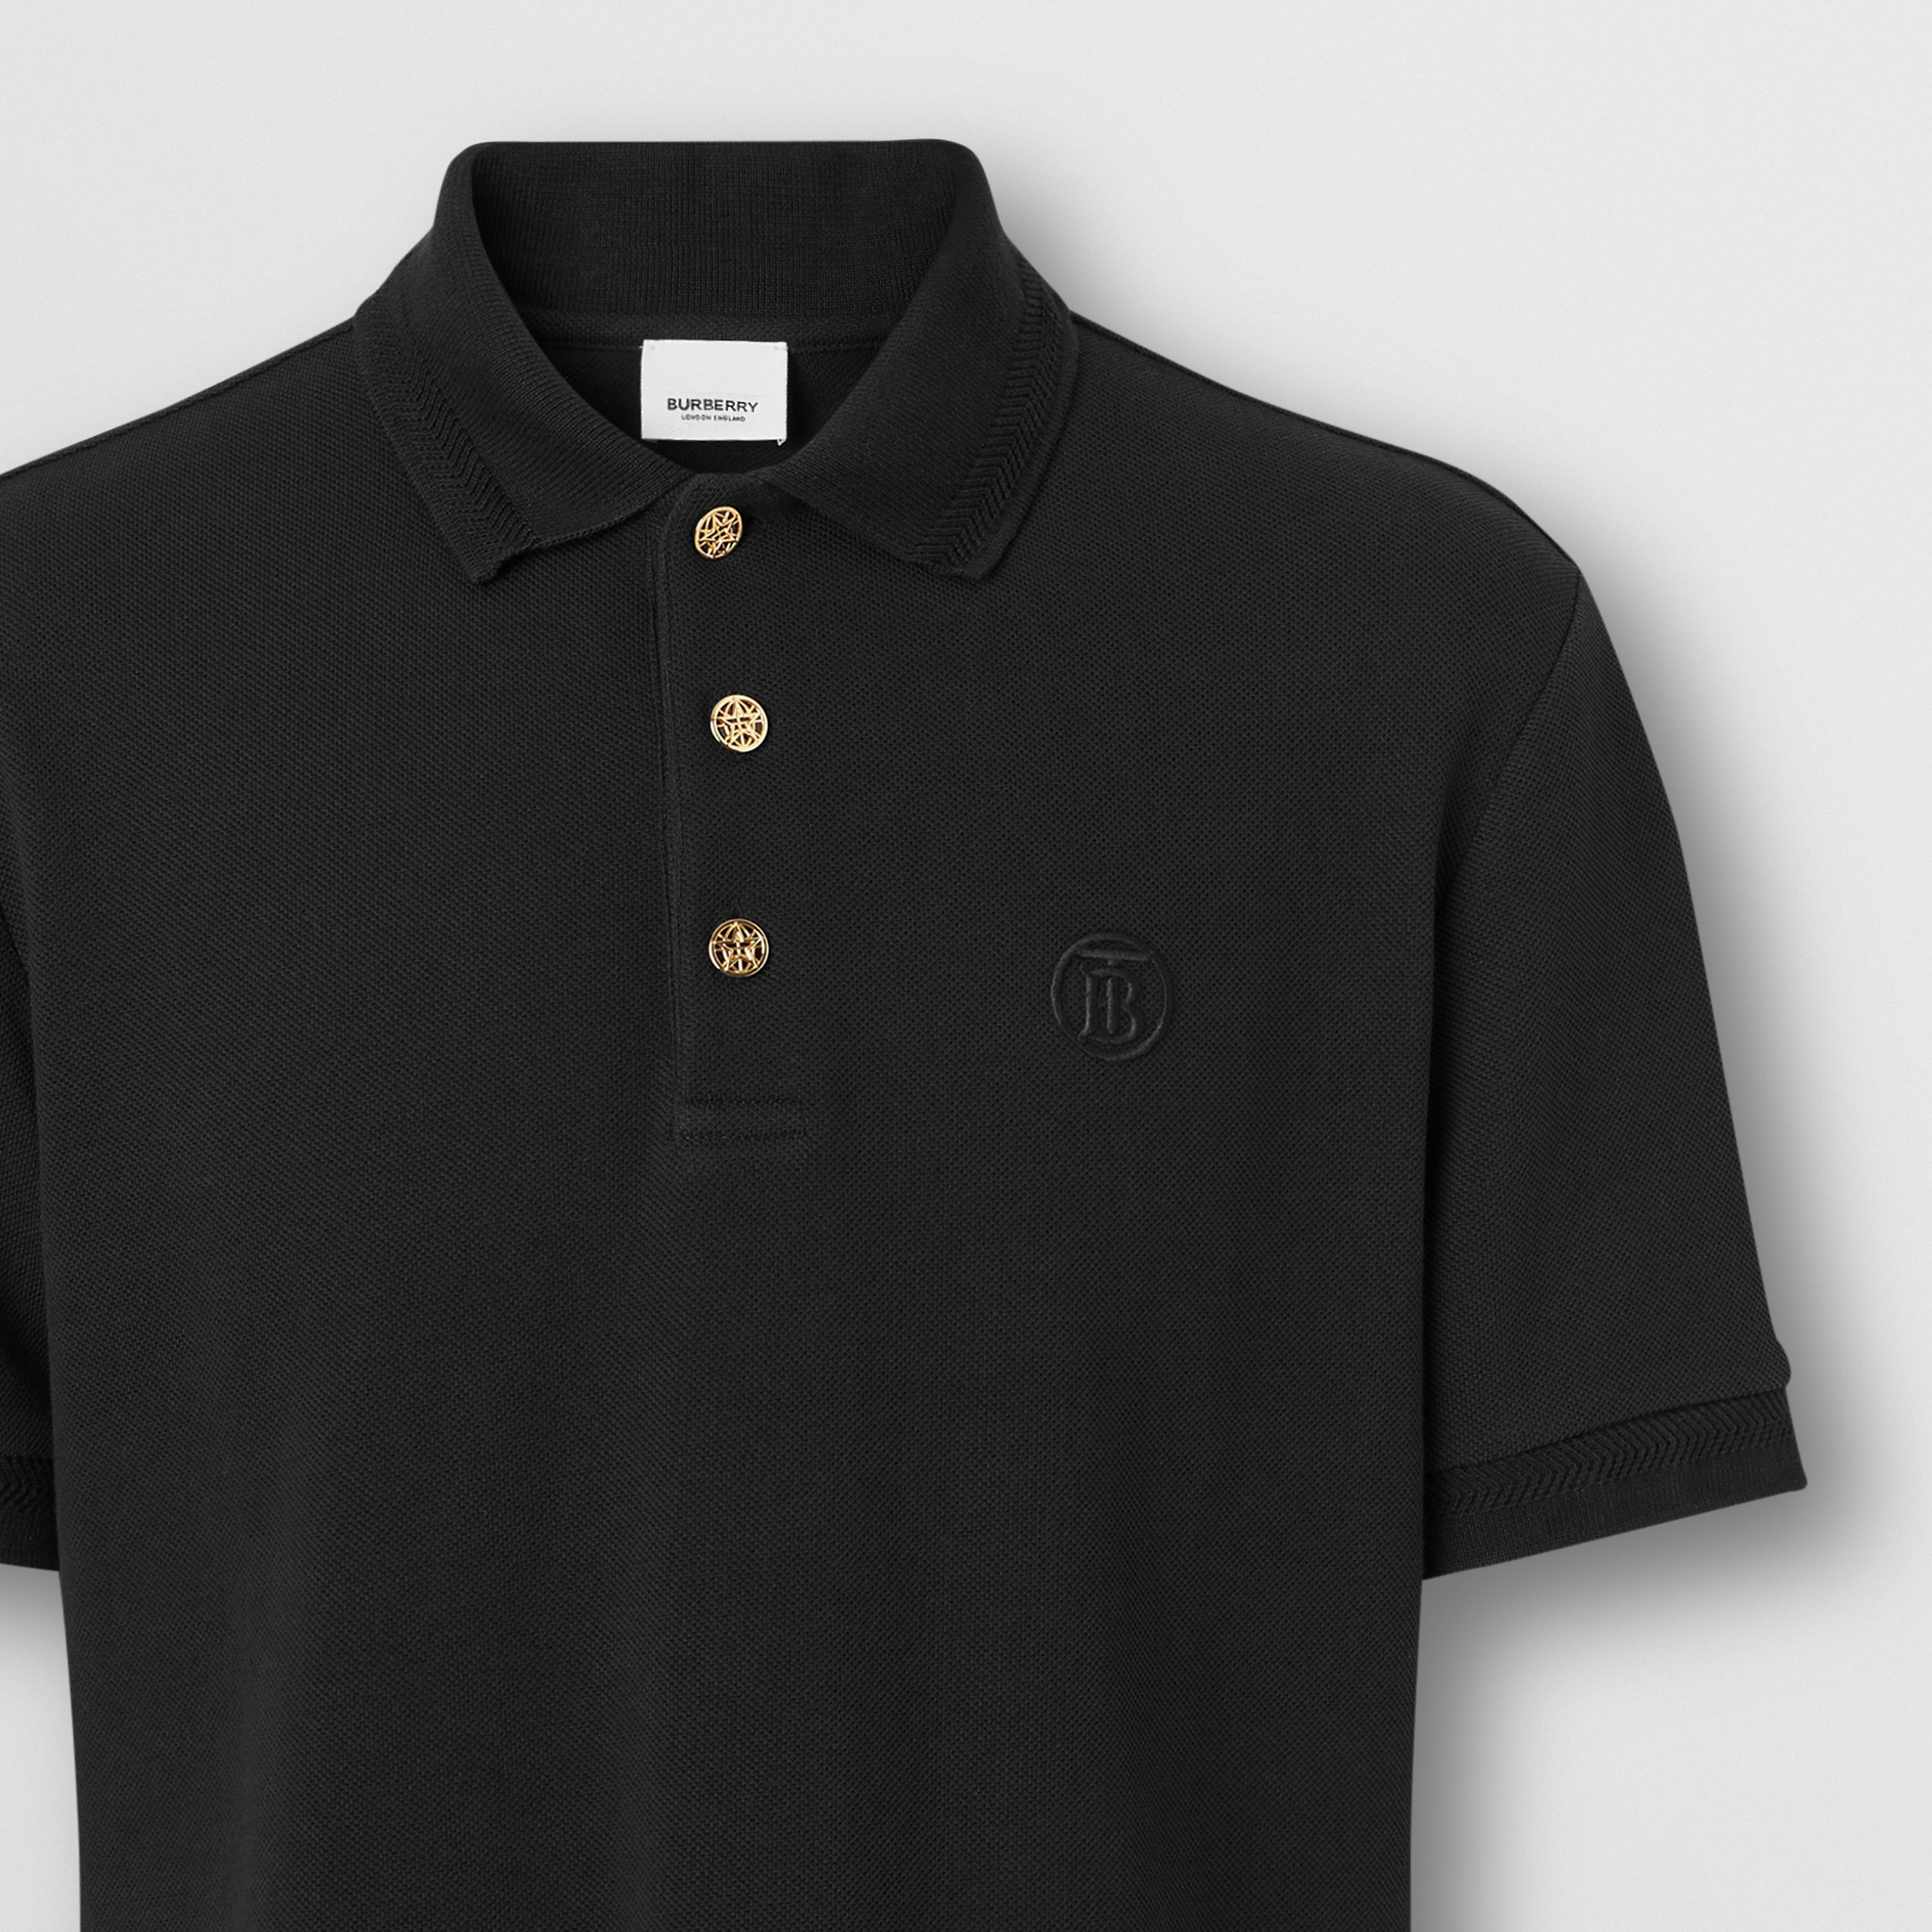 Button Detail Cotton Piqué Polo Shirt in Black - Men | Burberry - 2